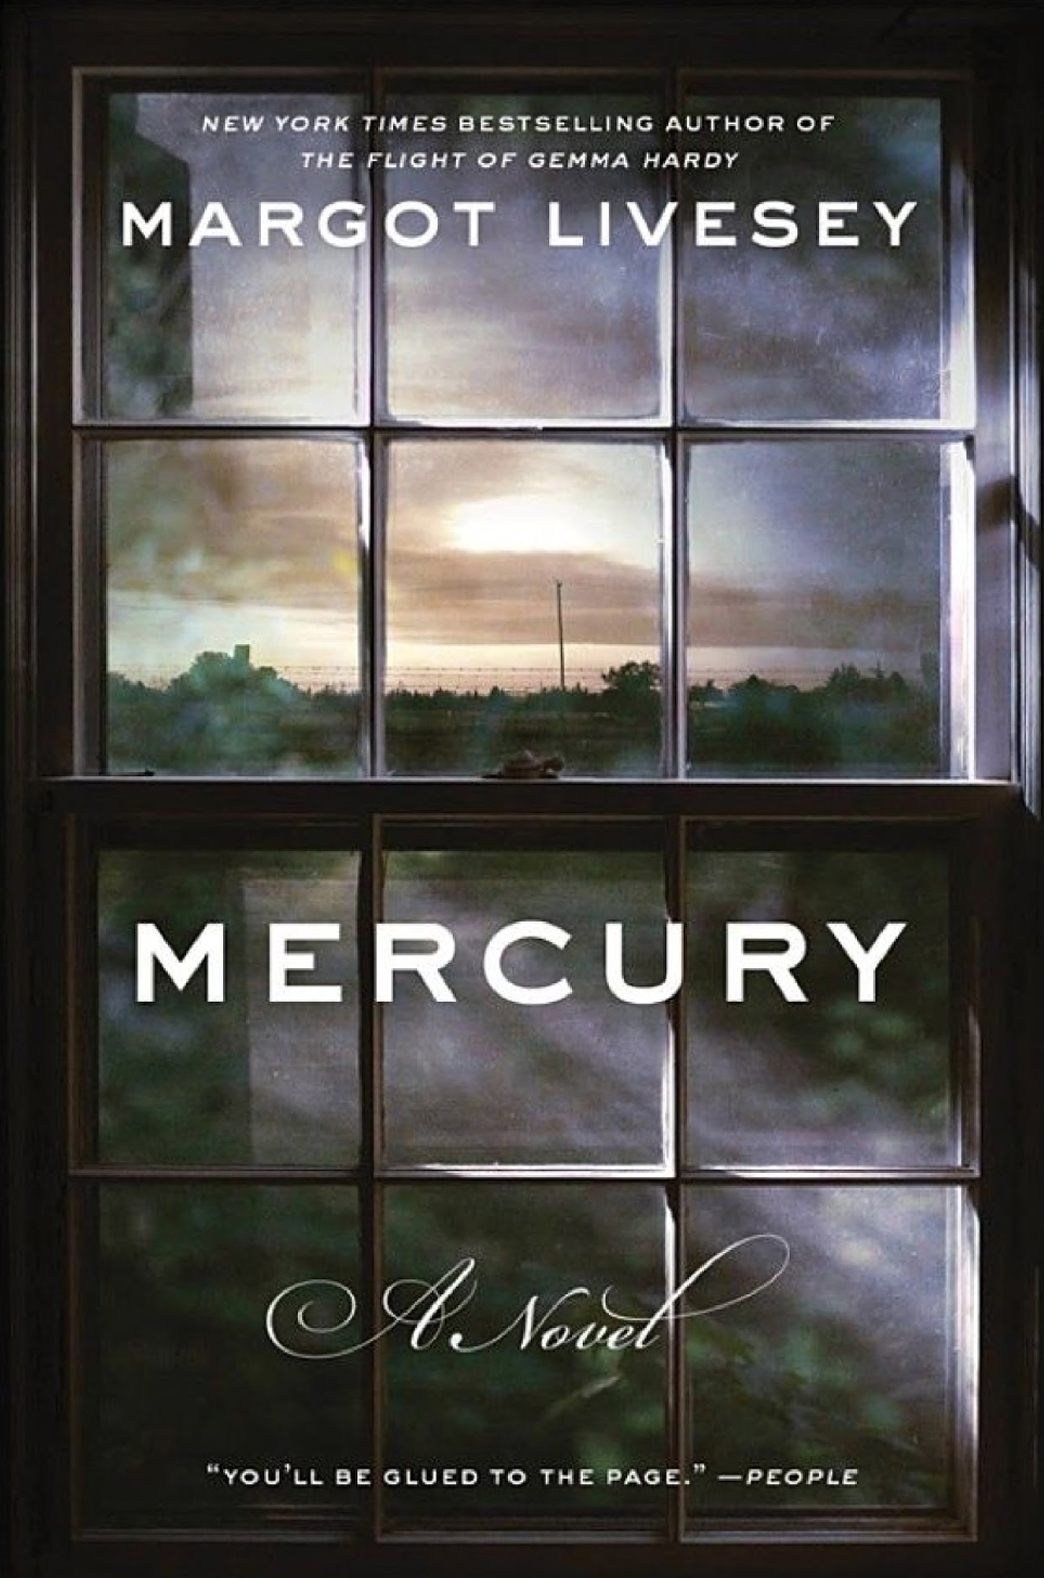 kathleen stone writer booklab literary salon mercury margot livesey